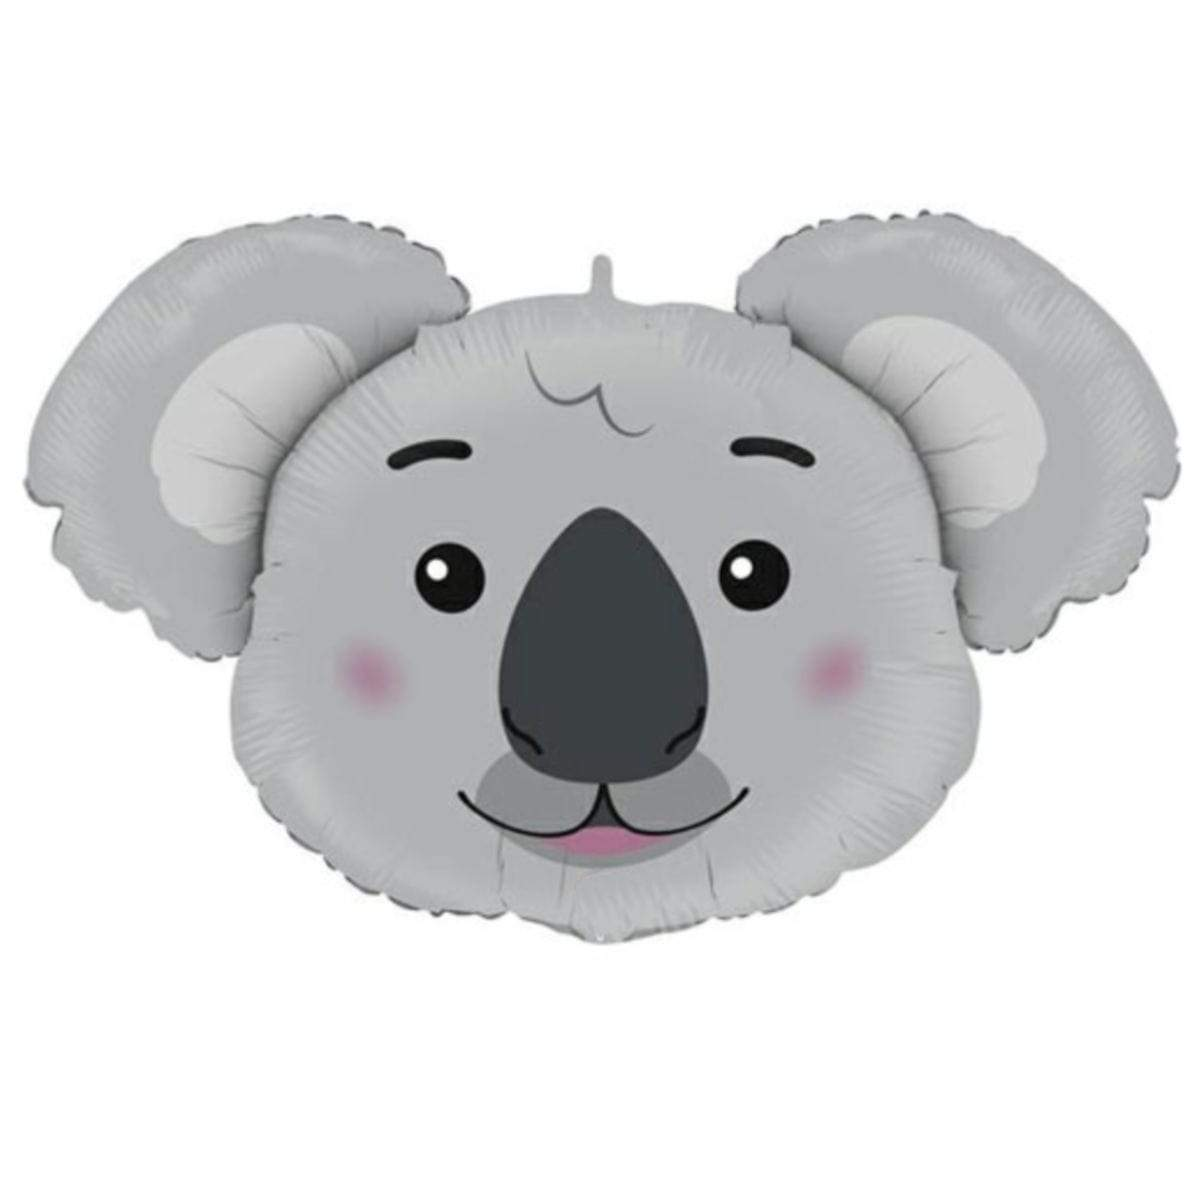 Koala Helium Balloon | Koala Head Foil Balloon UK